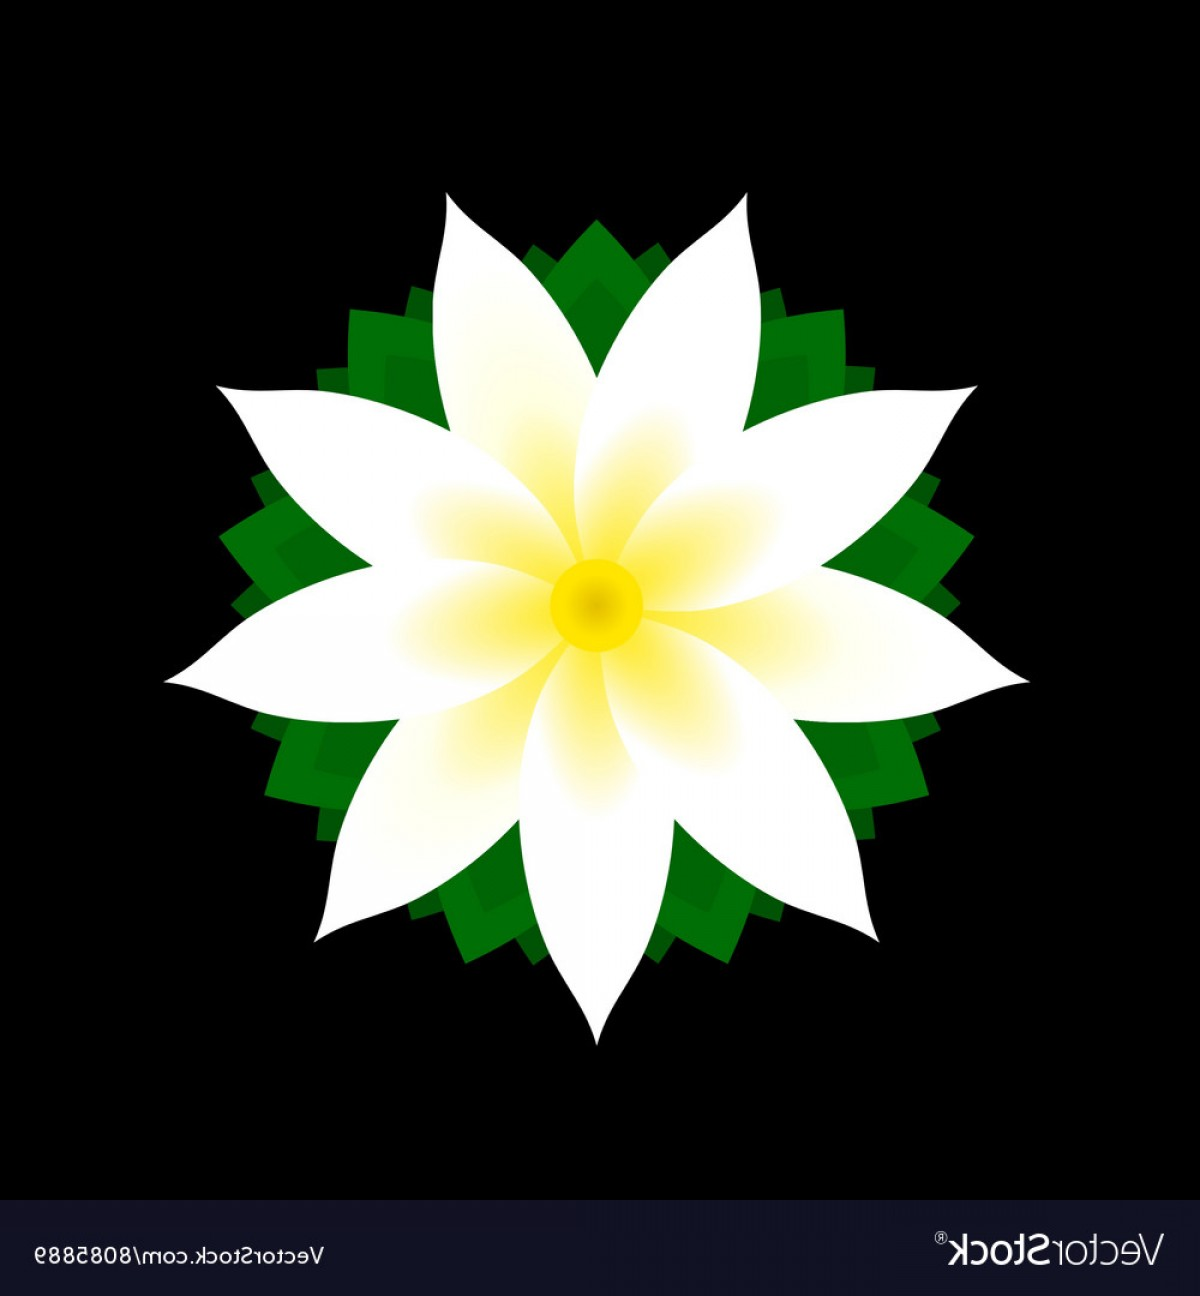 Icon Of Flower Vectors: Jasmine Flower Icon On Black Background Vector